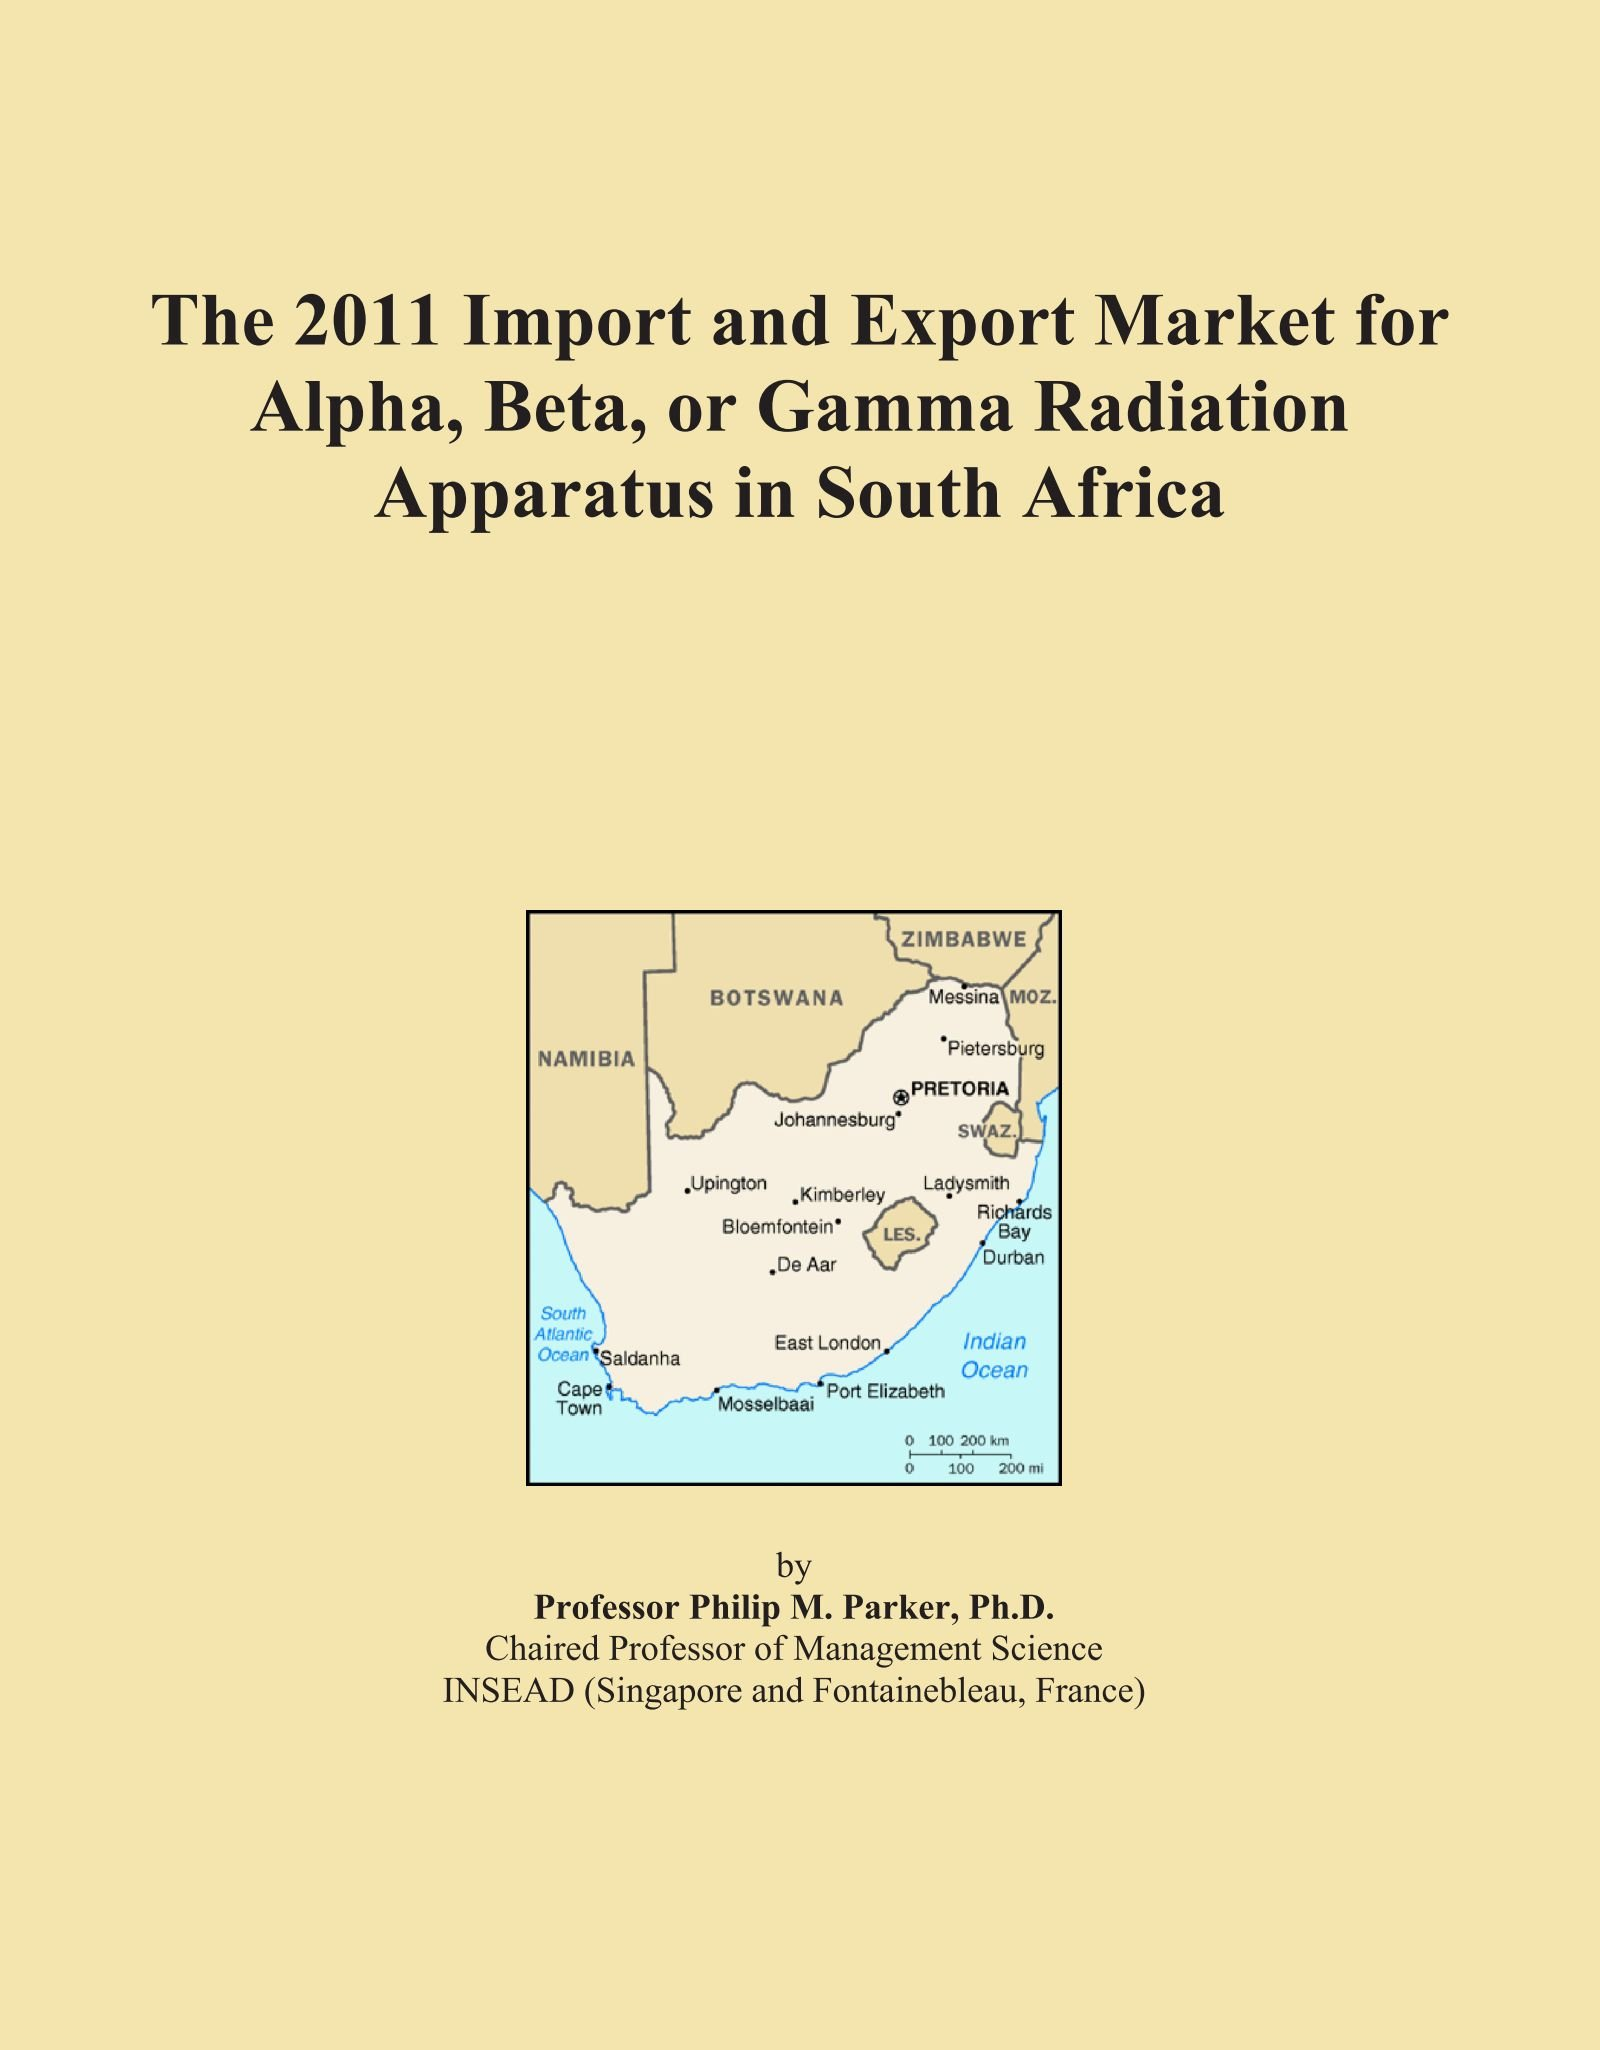 The 2011 Import and Export Market for Alpha, Beta, or Gamma Radiation Apparatus in South Africa PDF